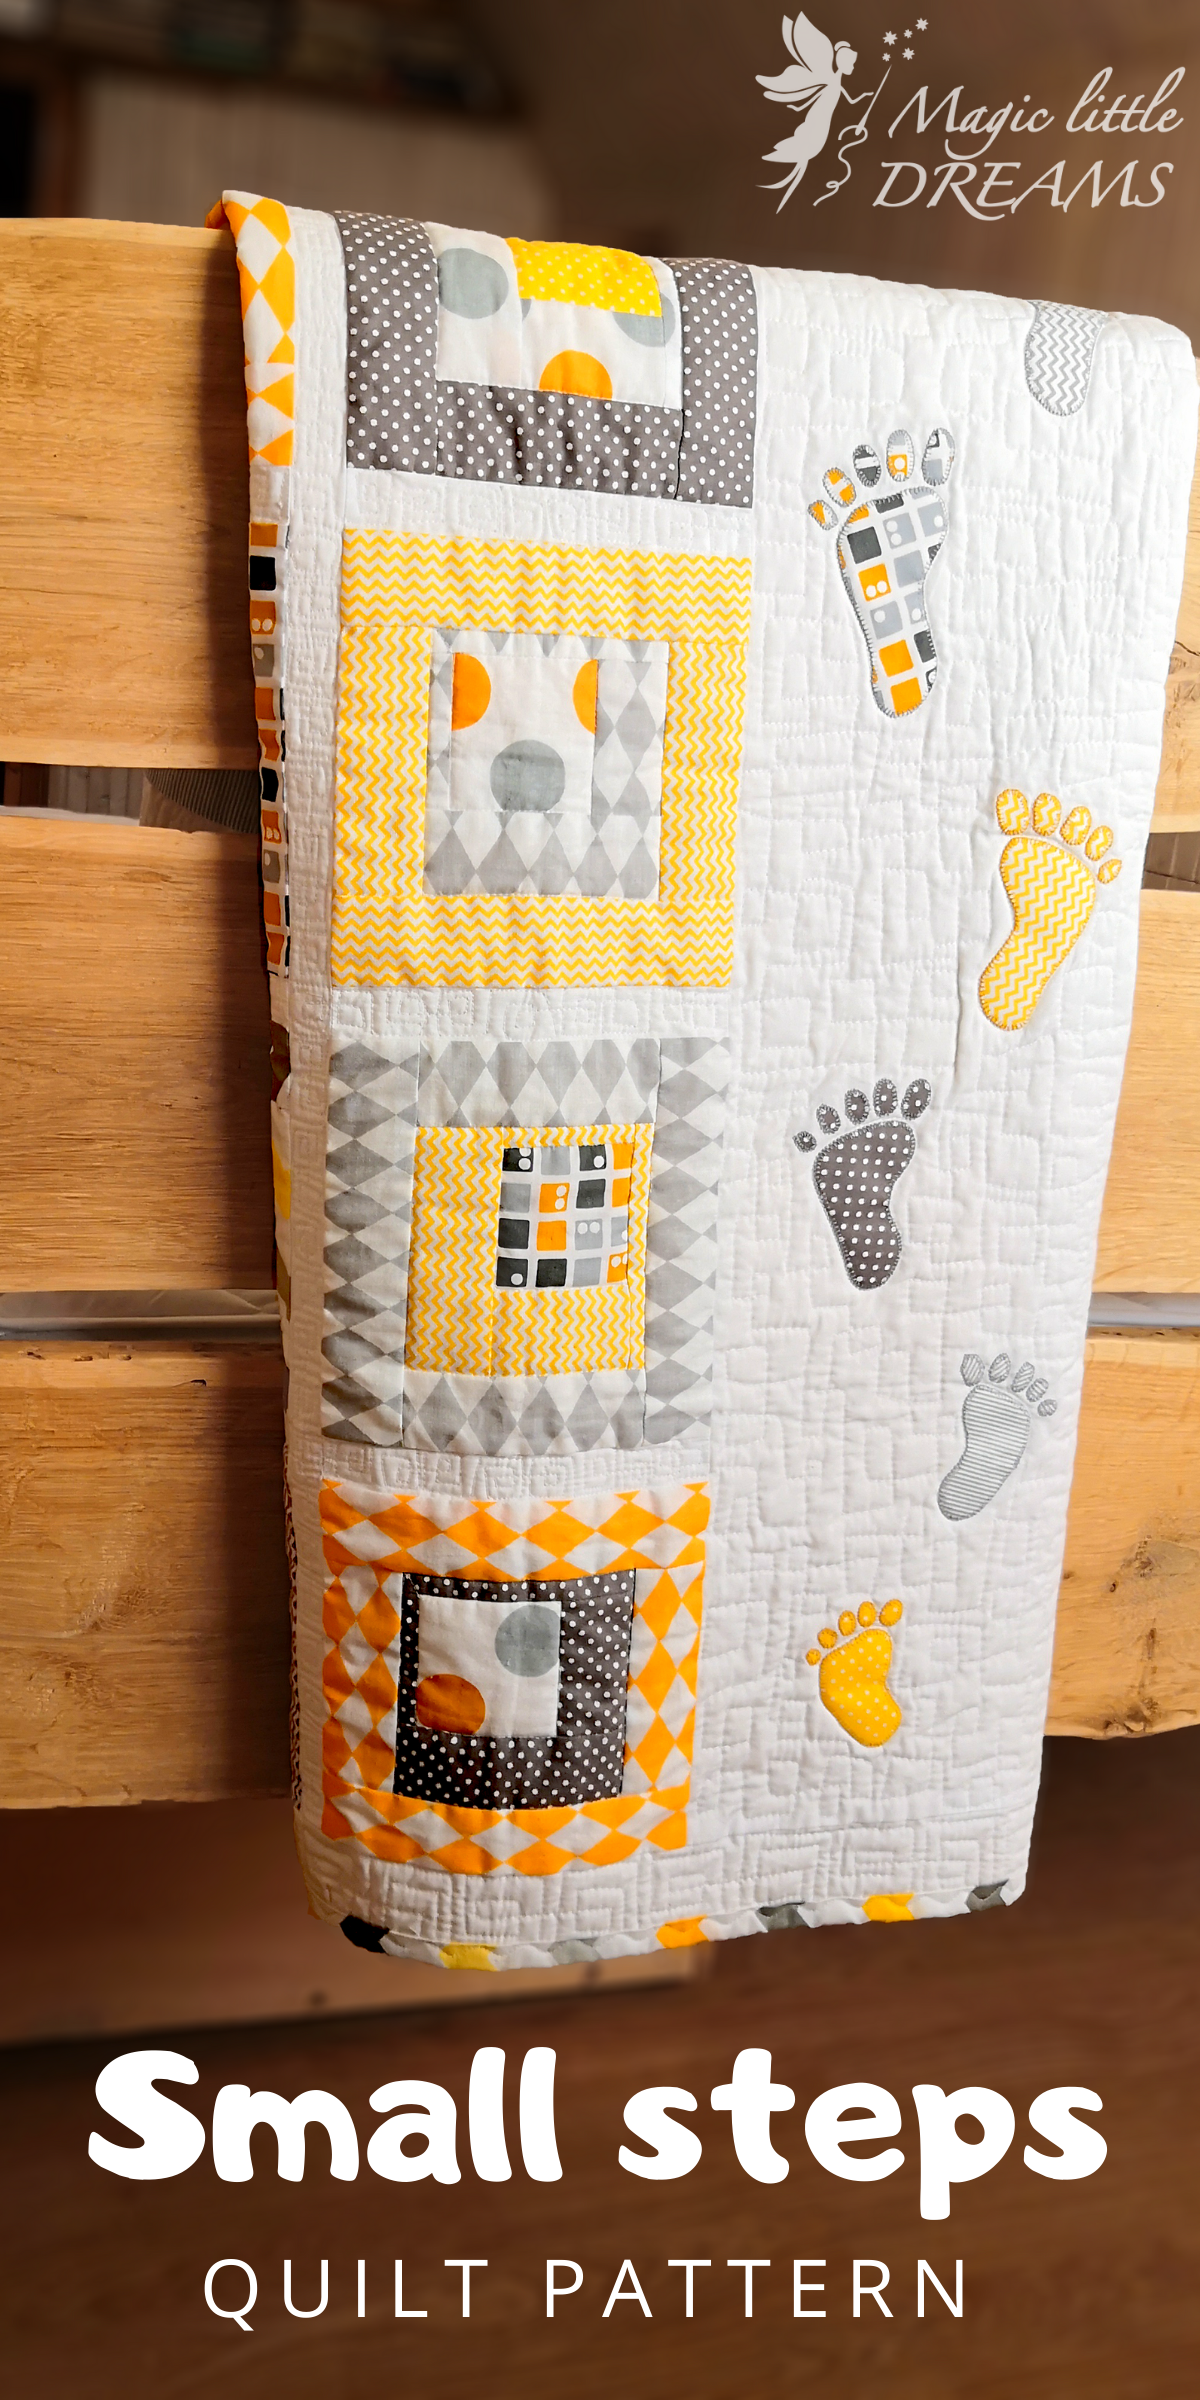 """""""Small Steps"""" – yellow unisex baby quilt pattern from Magic Little Dreams"""